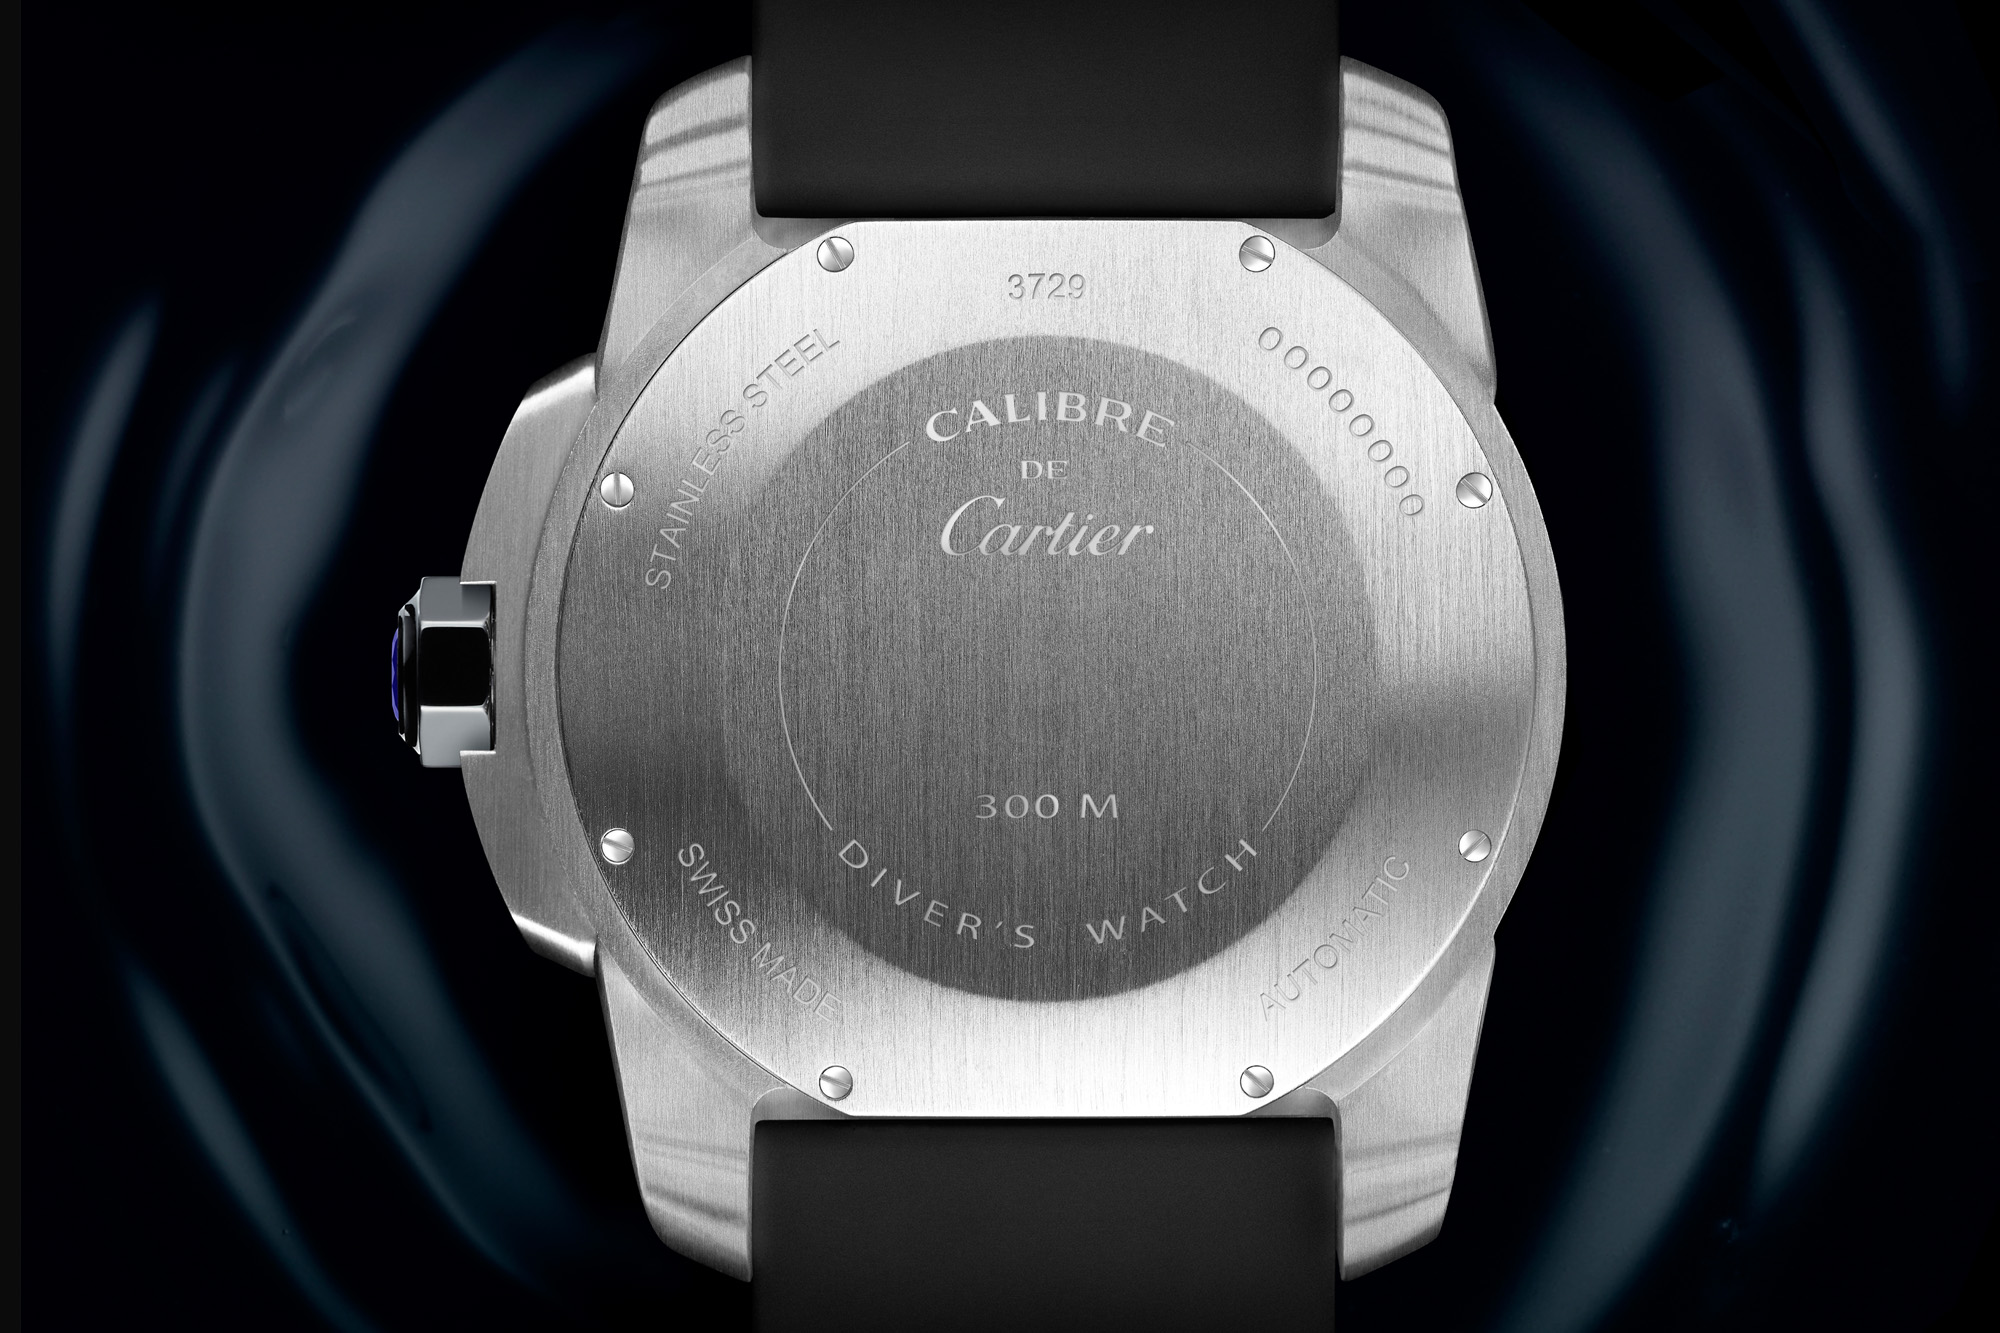 Back Of The Calibre De Cartier Diver